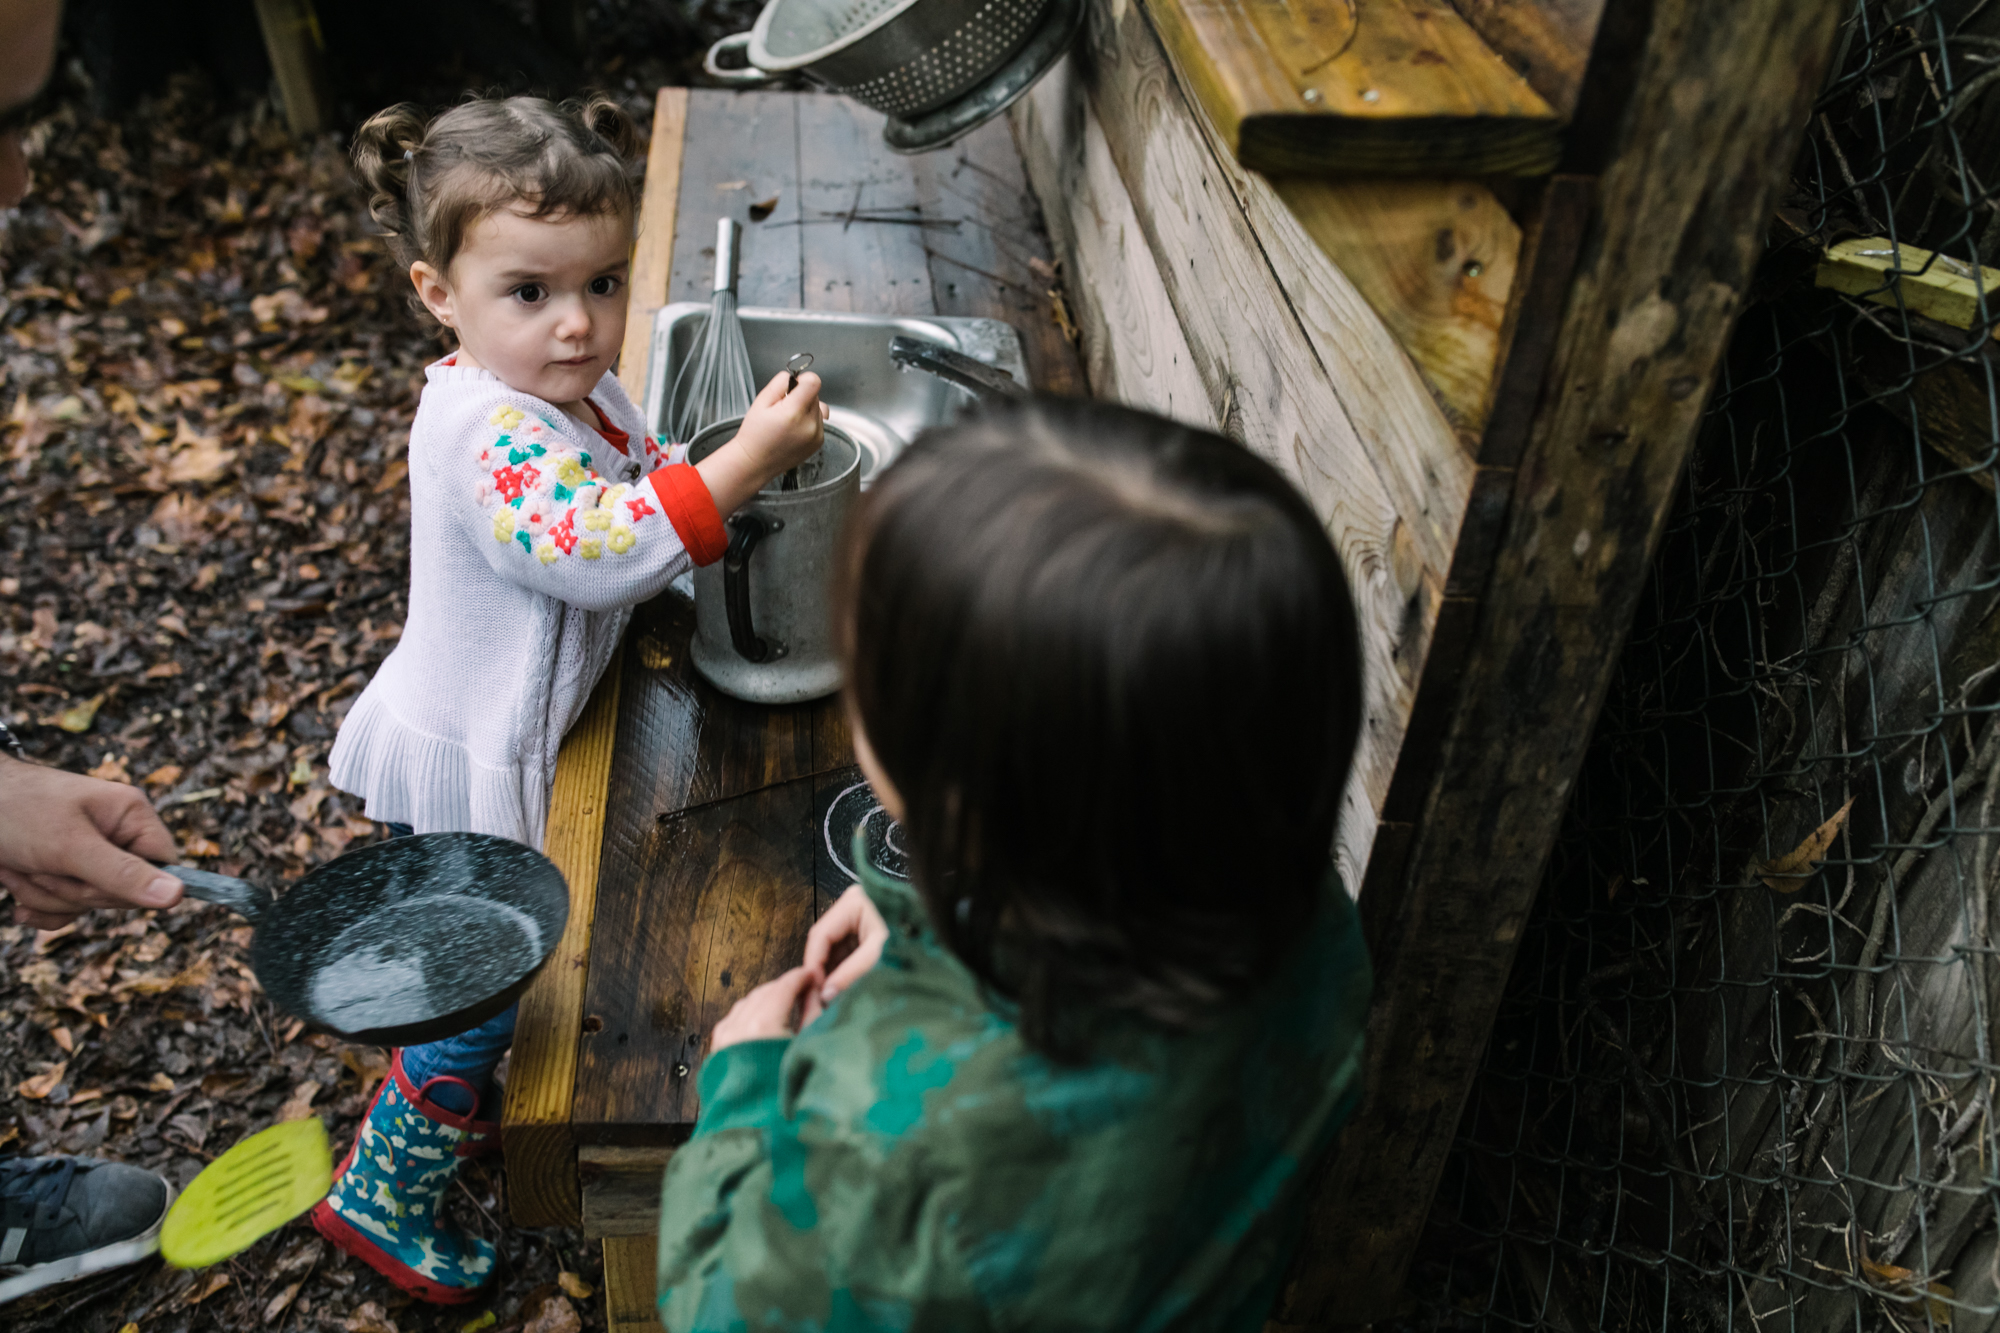 A little girl looks at another child as she mixes something at an outdoor play kitchen